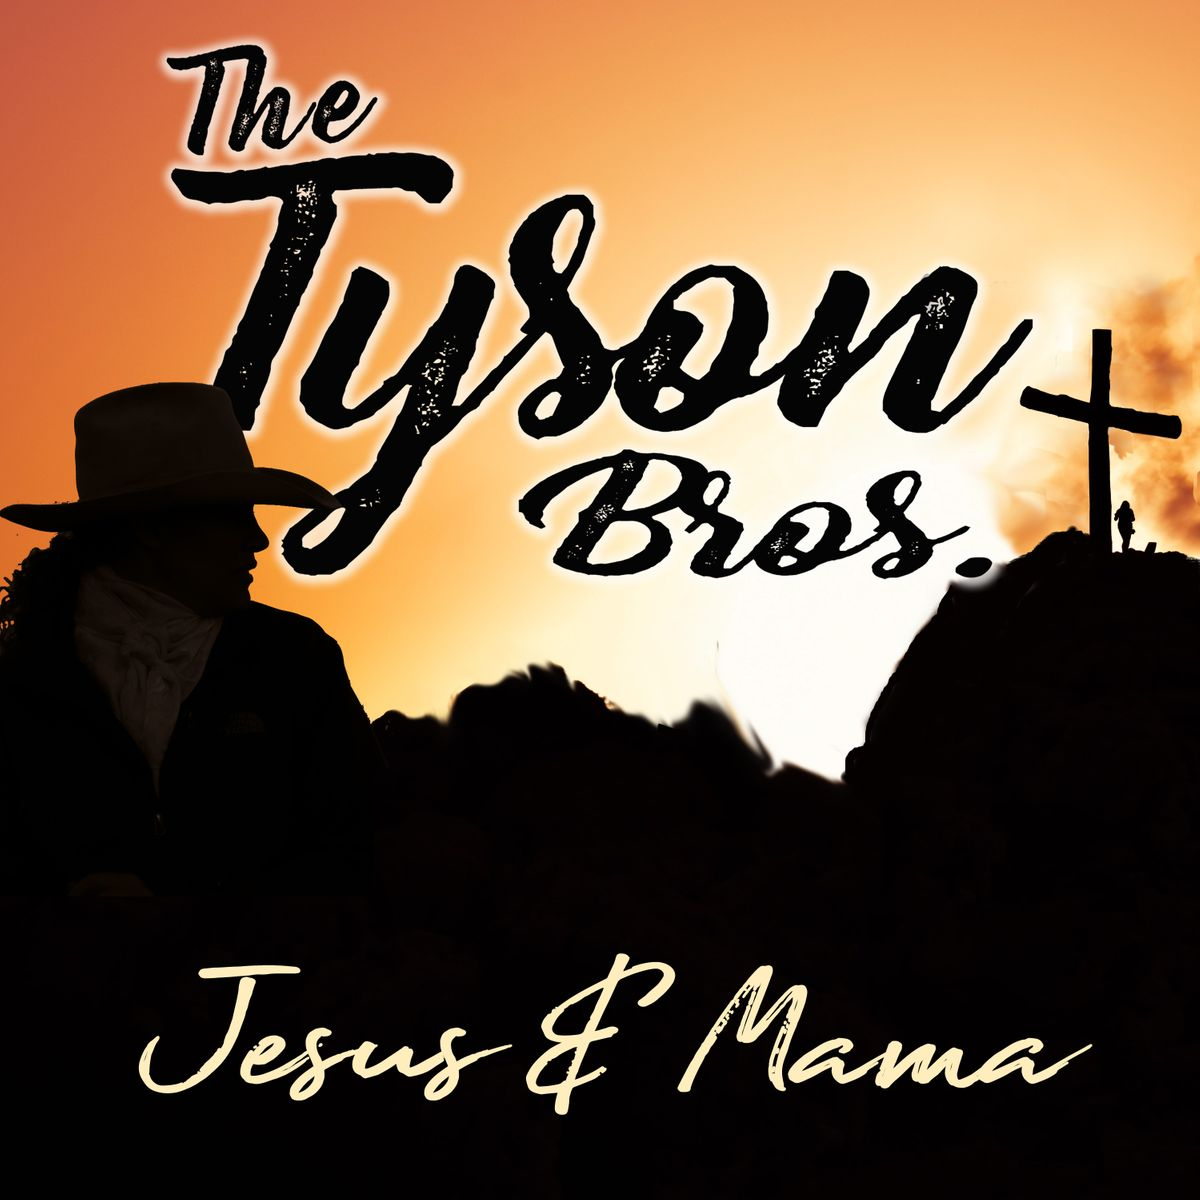 Cover_Jesus_and_mama2